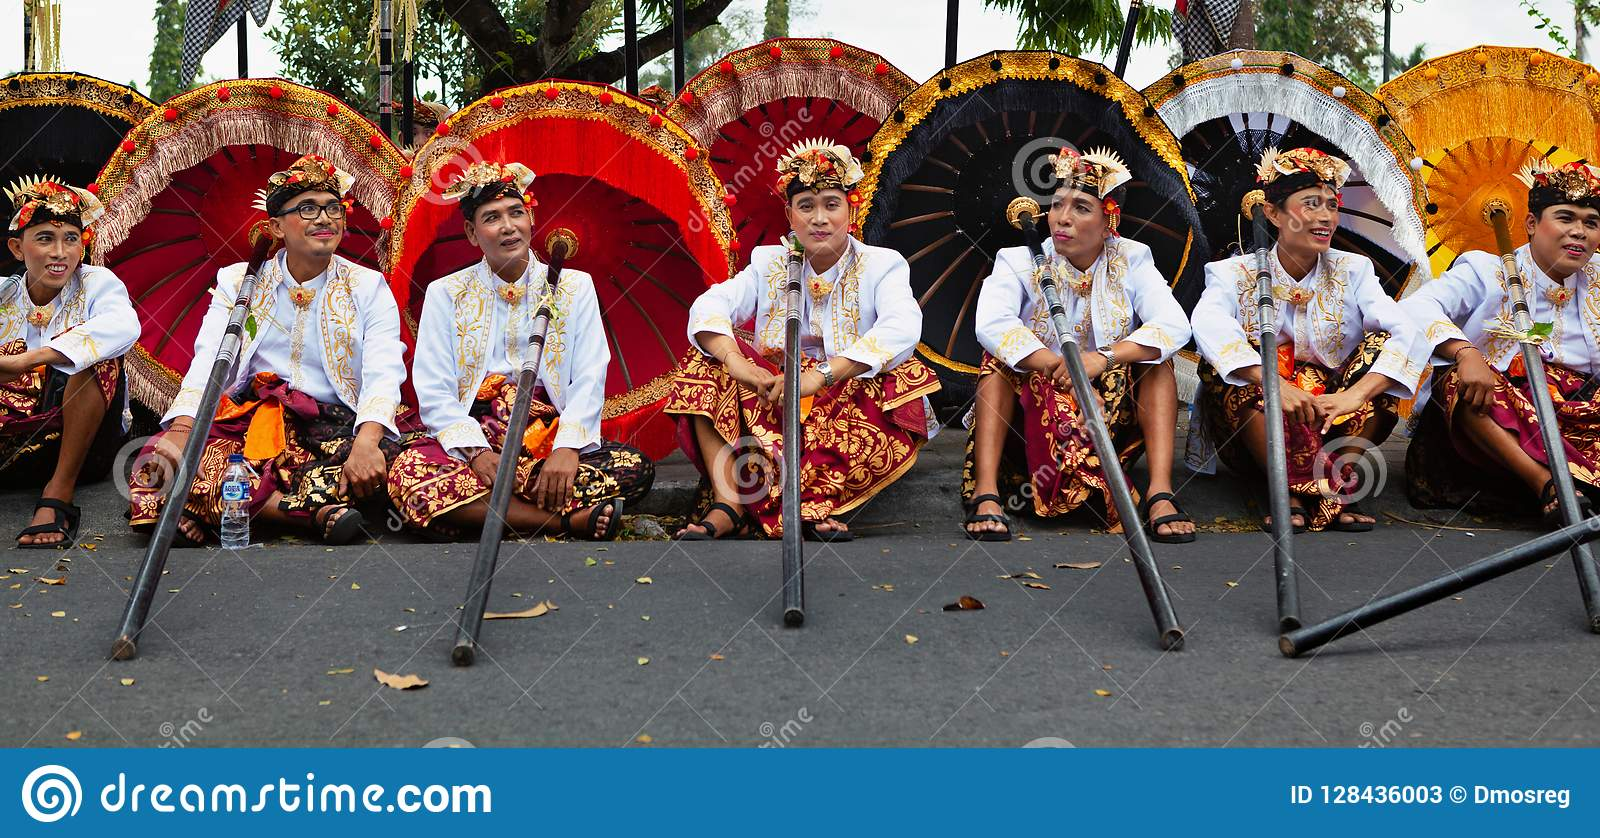 Young Balinese Men In Ethnic Costumes With Traditional